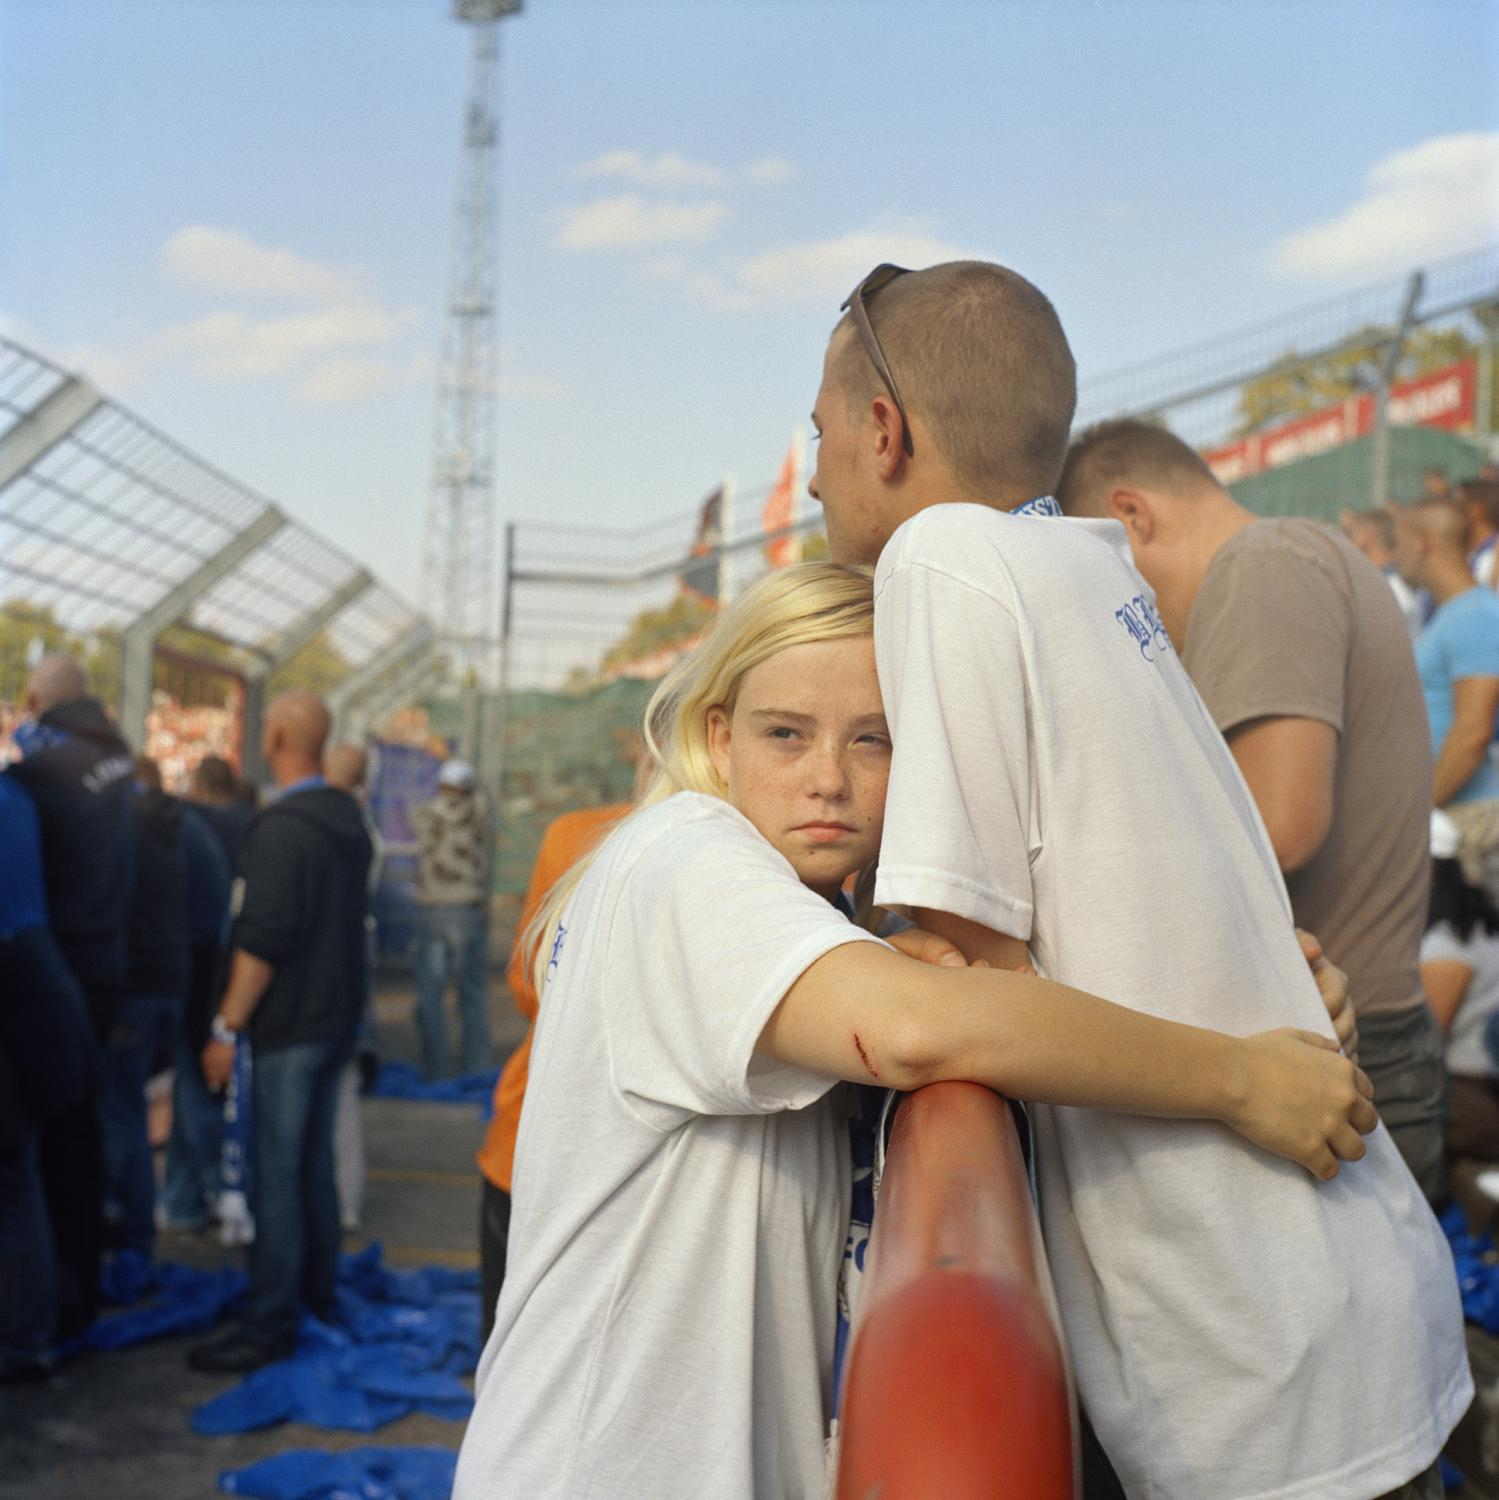 A couple of supporters hugs in the last minutes of the derby Halle - Magdeburg, in Halle.